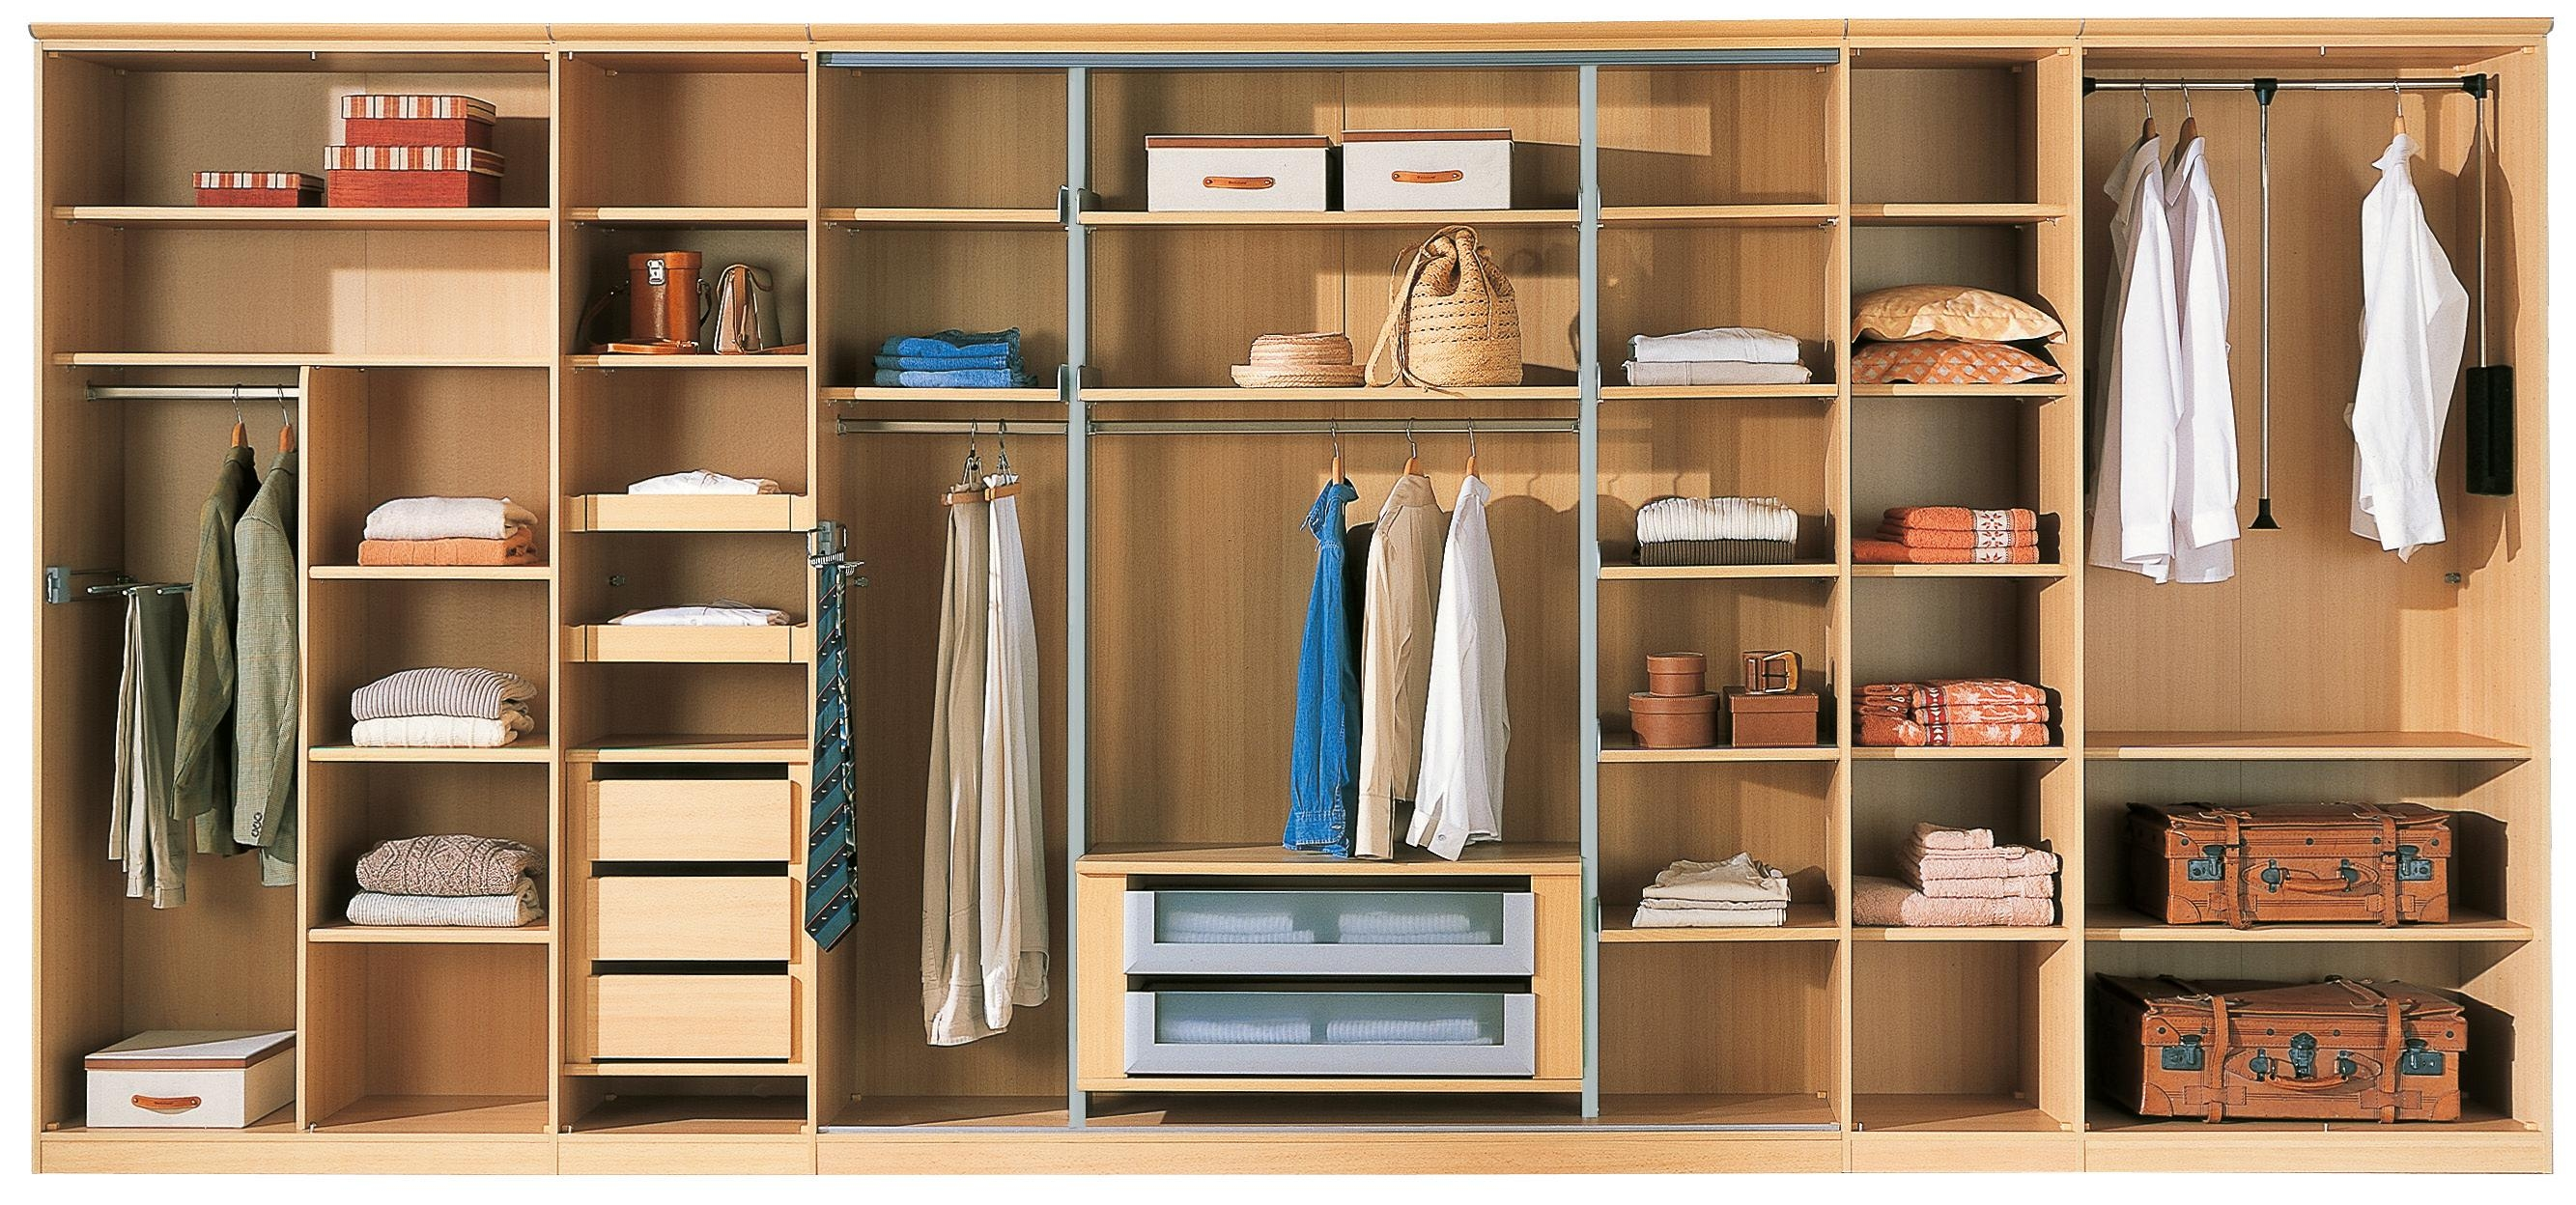 Bedroom Wardrobe Interior Shelves Design Ideas 2017 2018 With Regard To Wardrobe With Drawers And Shelves (View 5 of 15)